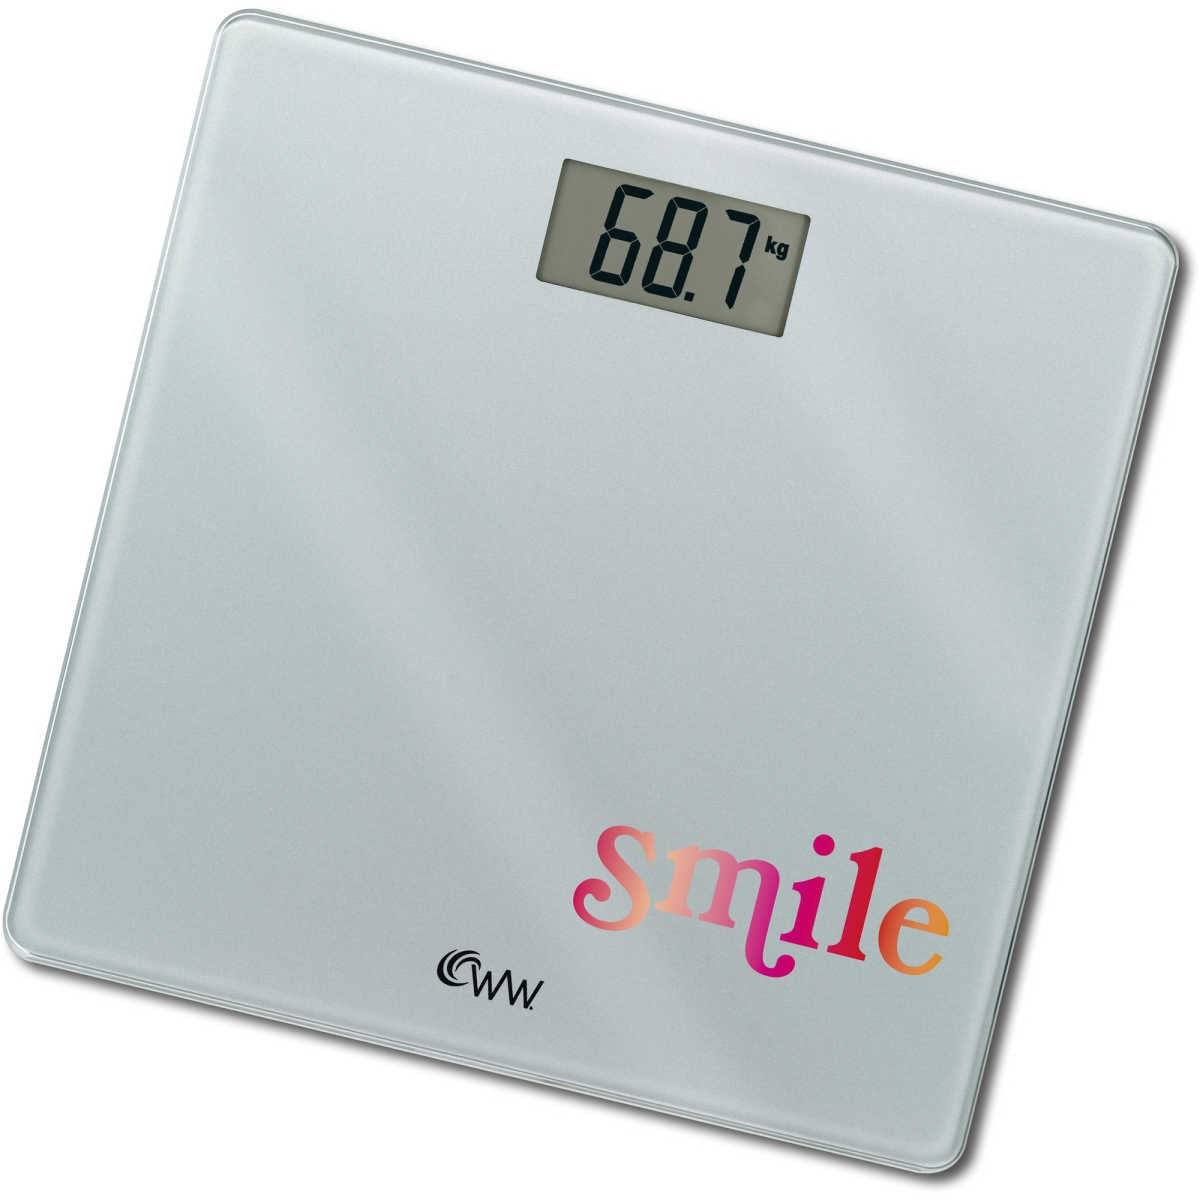 Luggage Scale Big W Weight Watchers Body Weight Electronic Scale Ww58a Big W